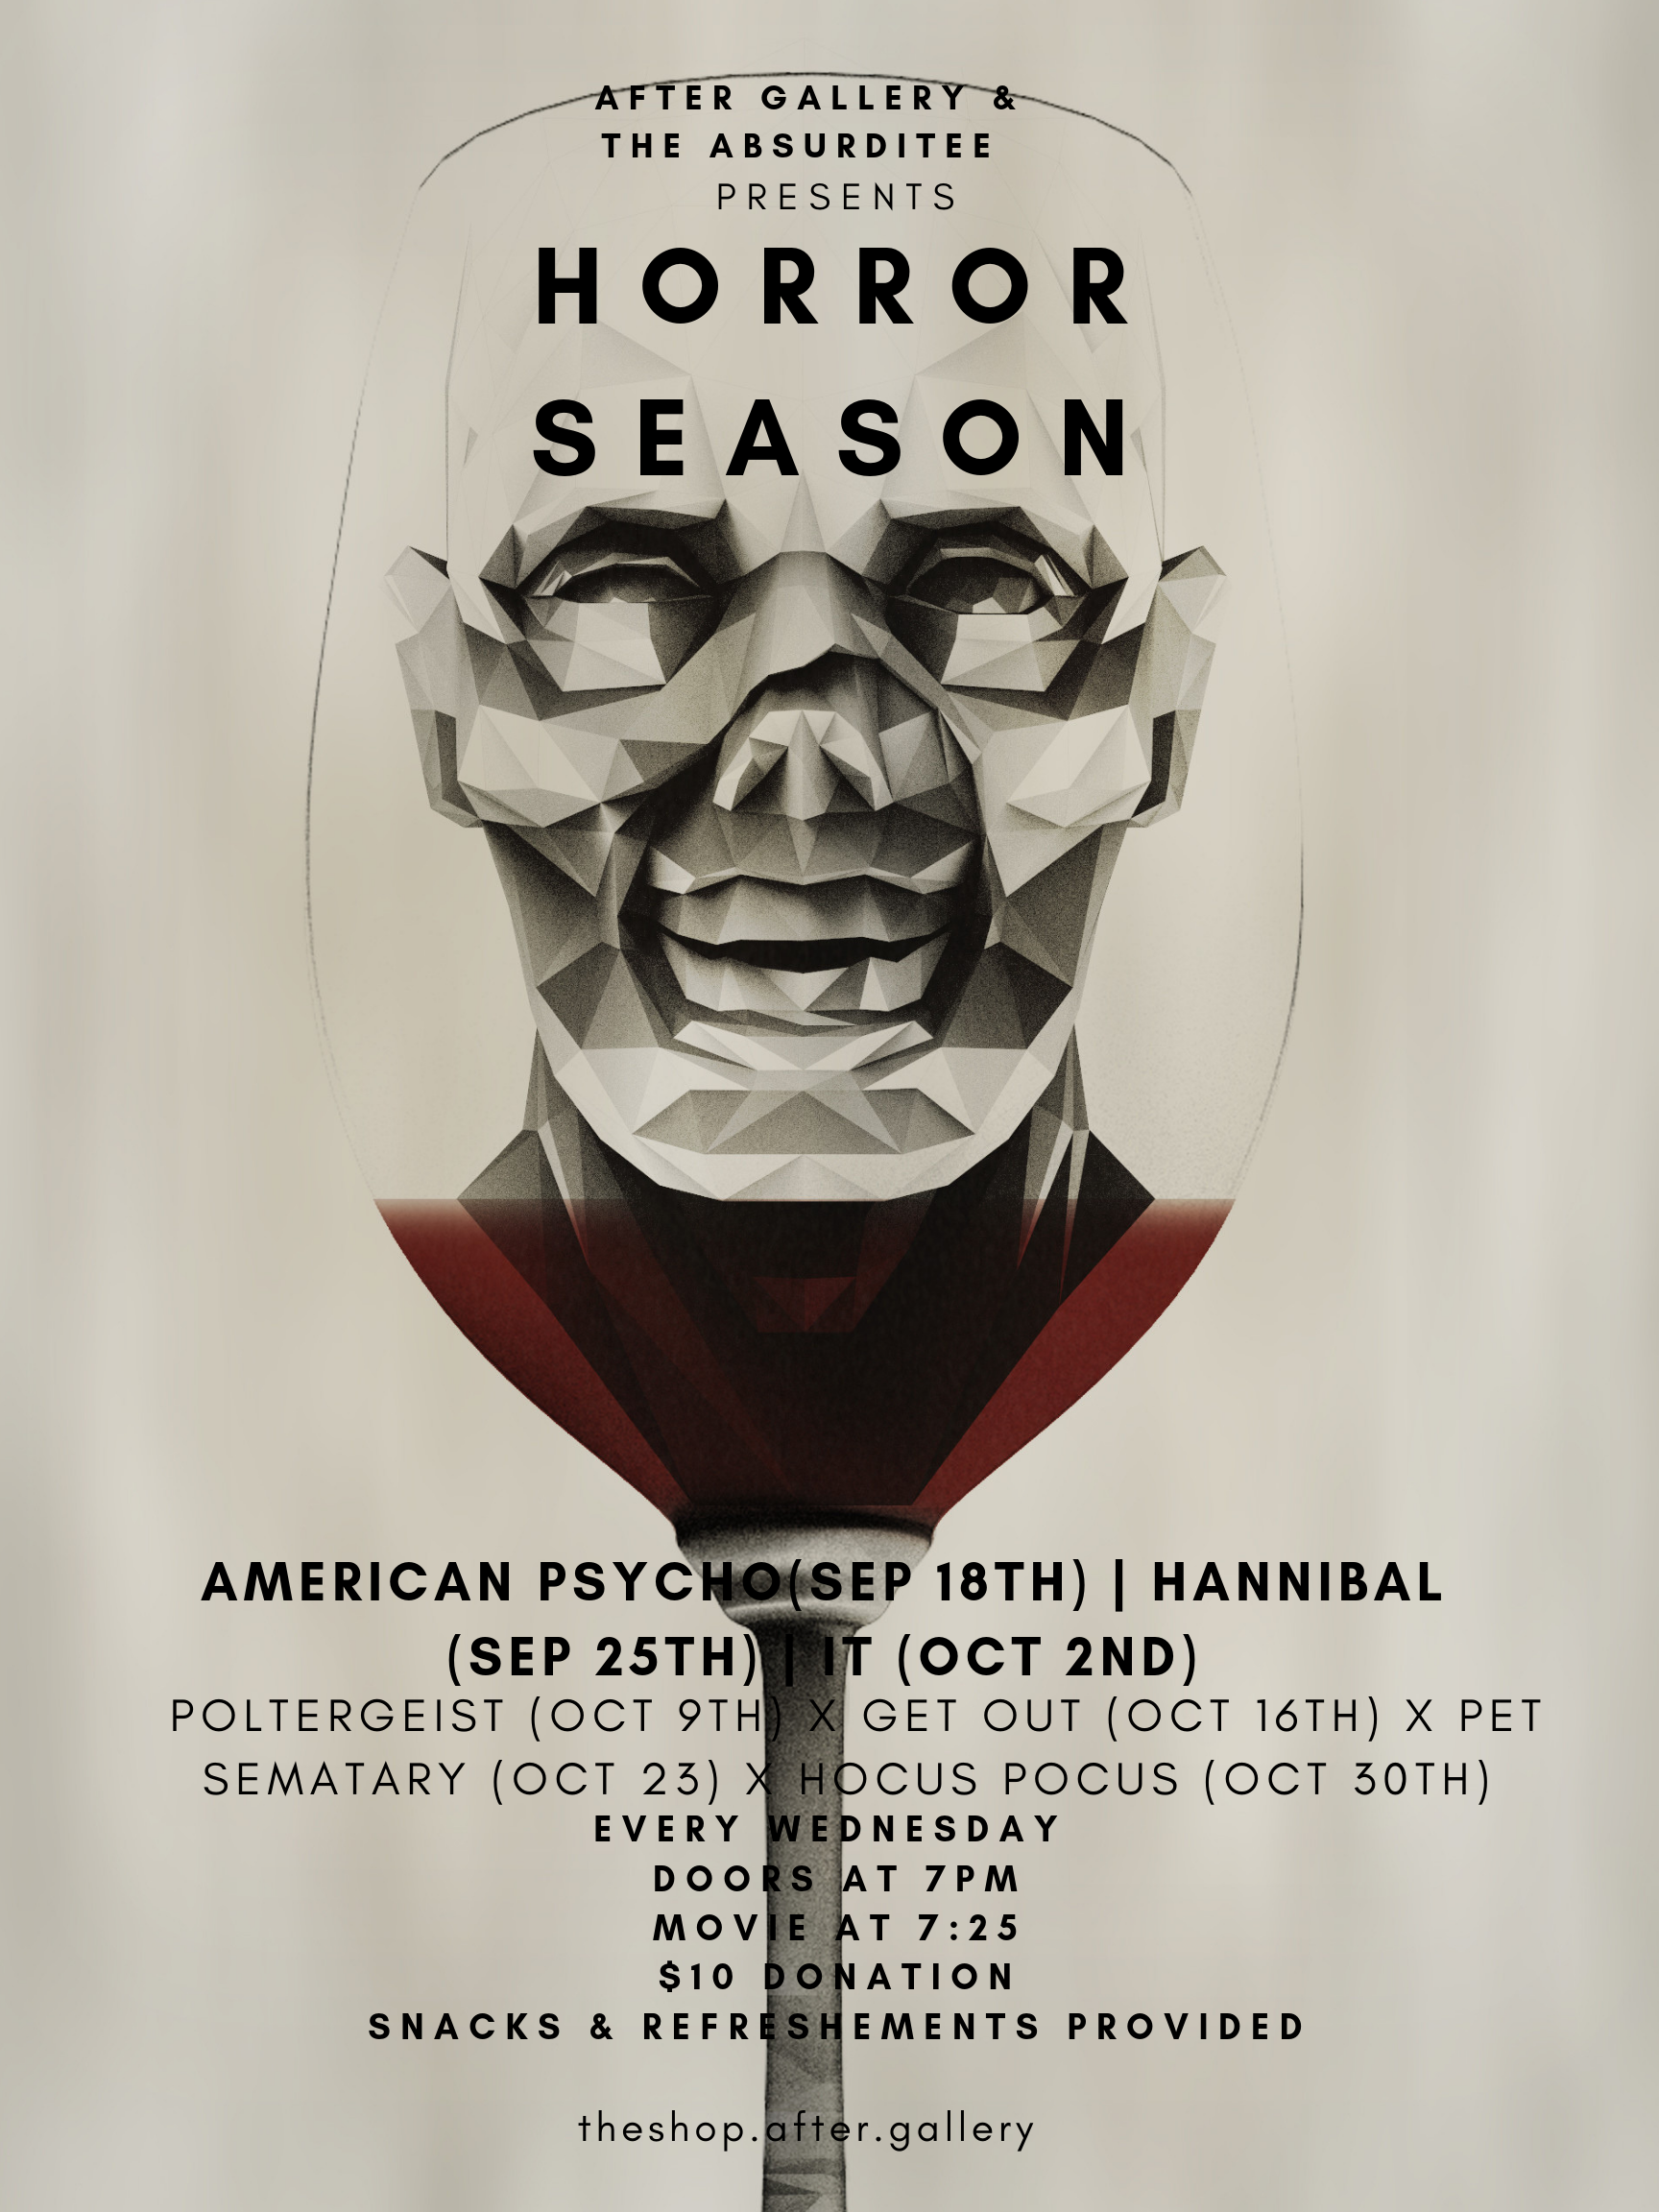 A weekly horror movie that lasts through October.